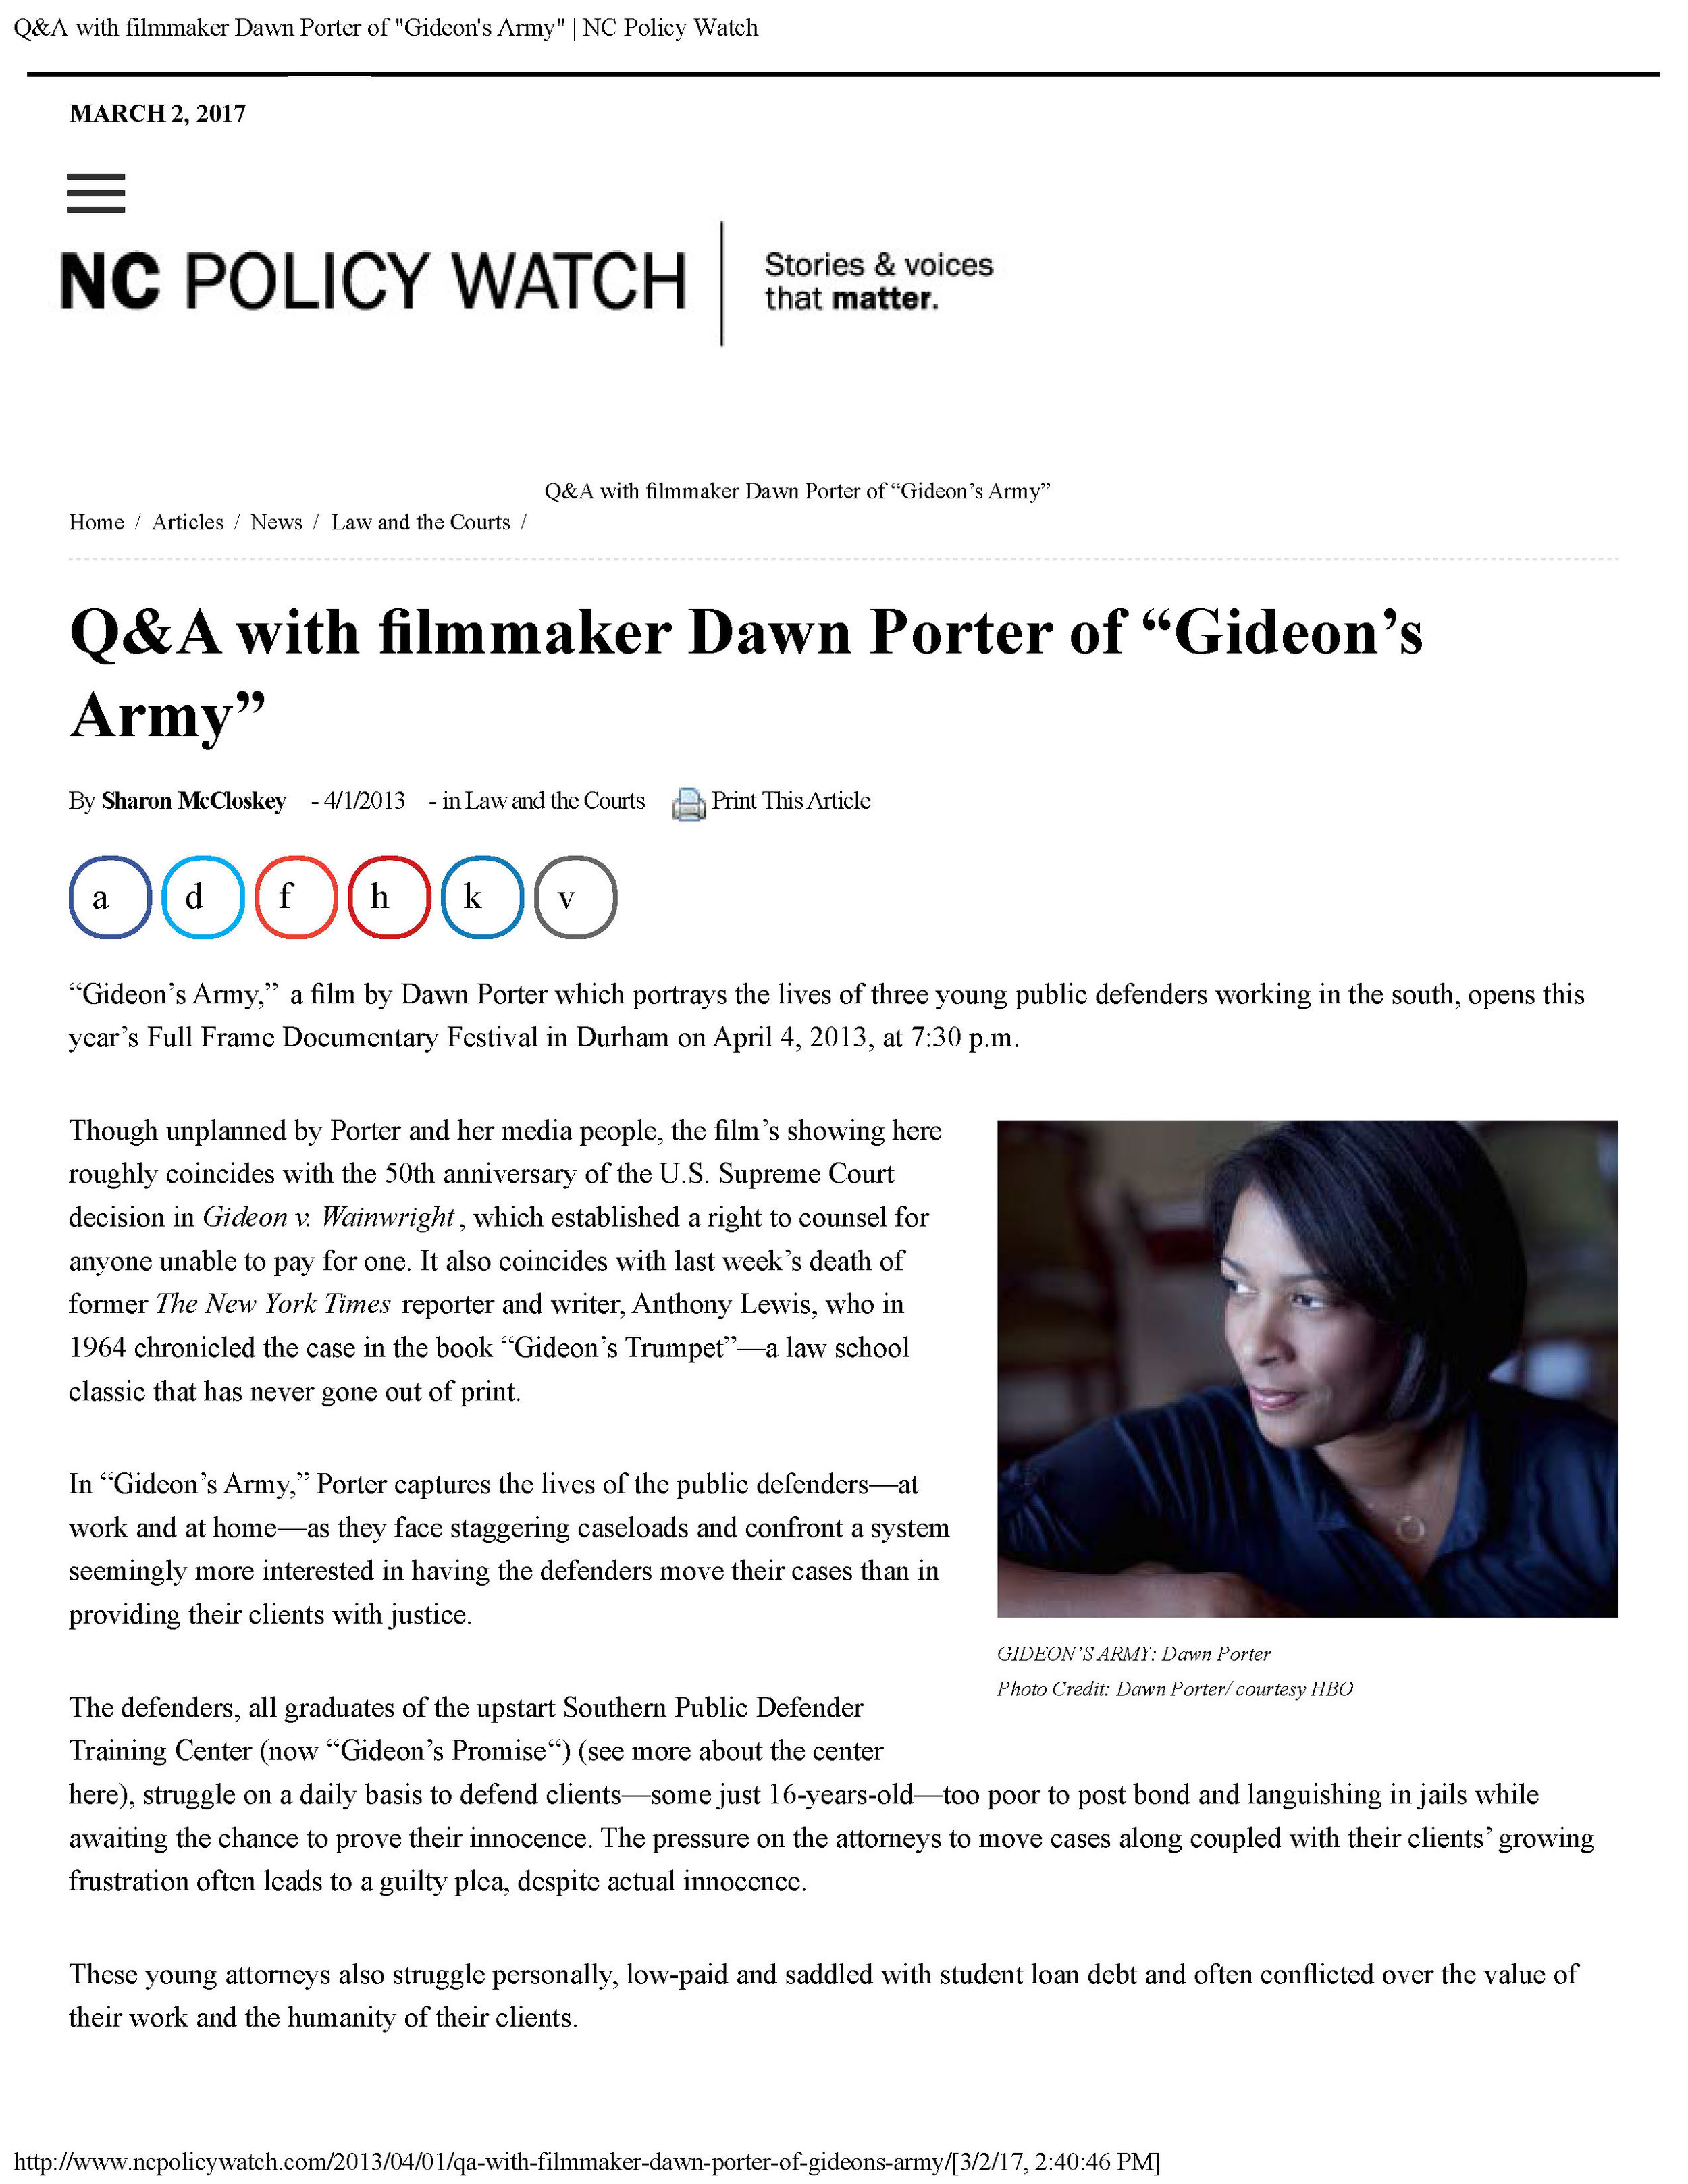 Sharon McCloskey - Q&A with filmmaker Dawn Porter of 'Gideon's Army' - NC Policy Watch_Page_1.jpg